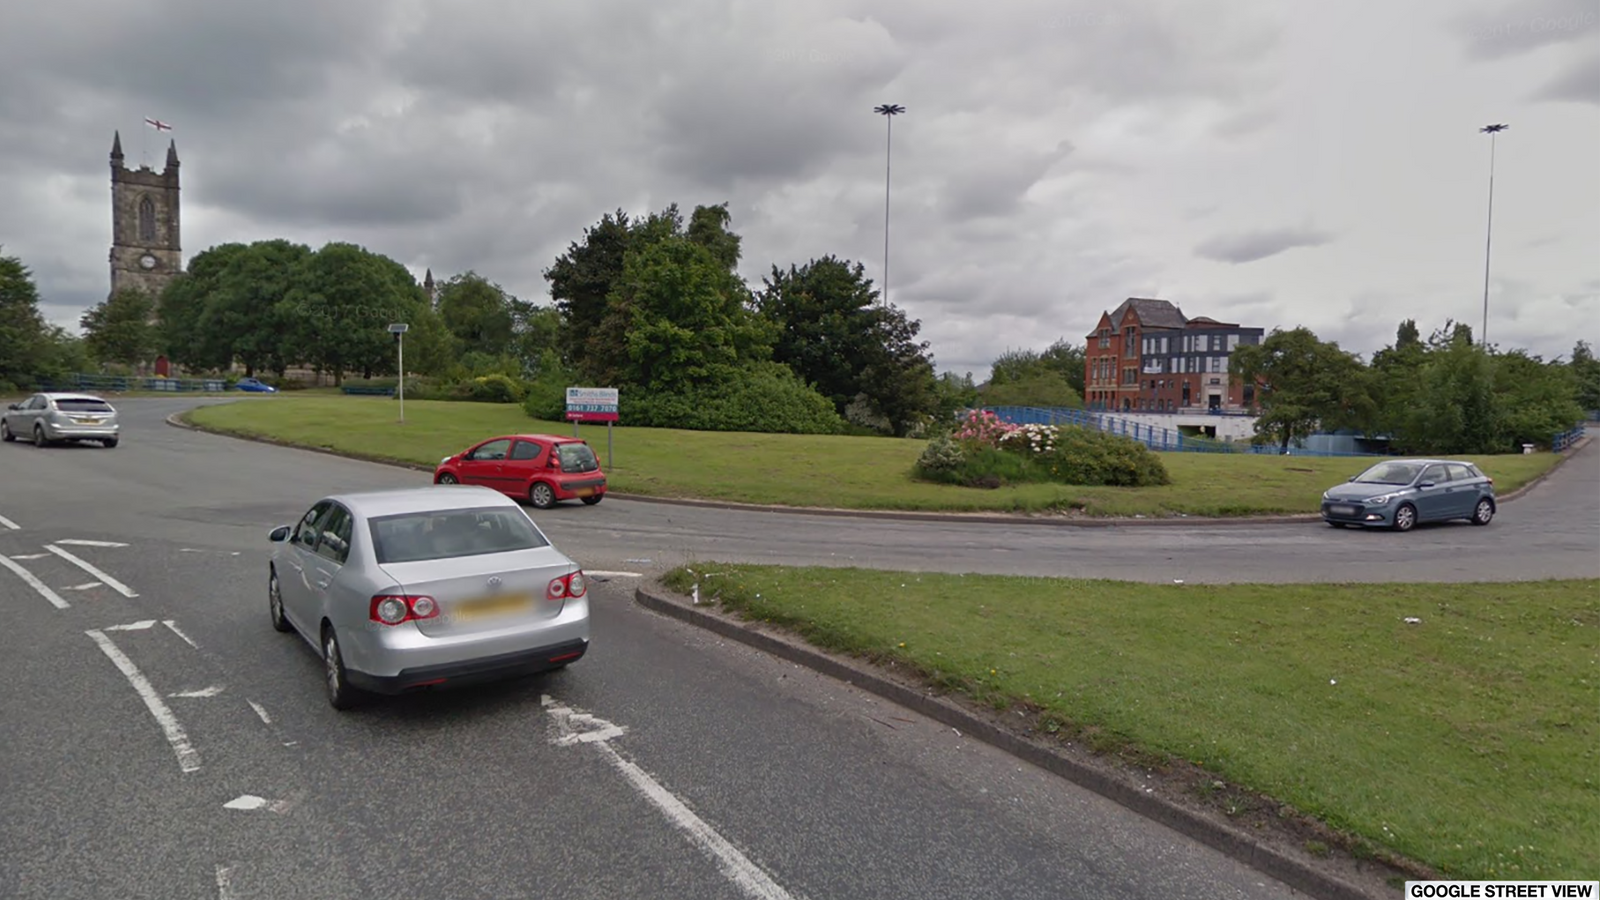 Salford: Police officer seriously injured after car chase